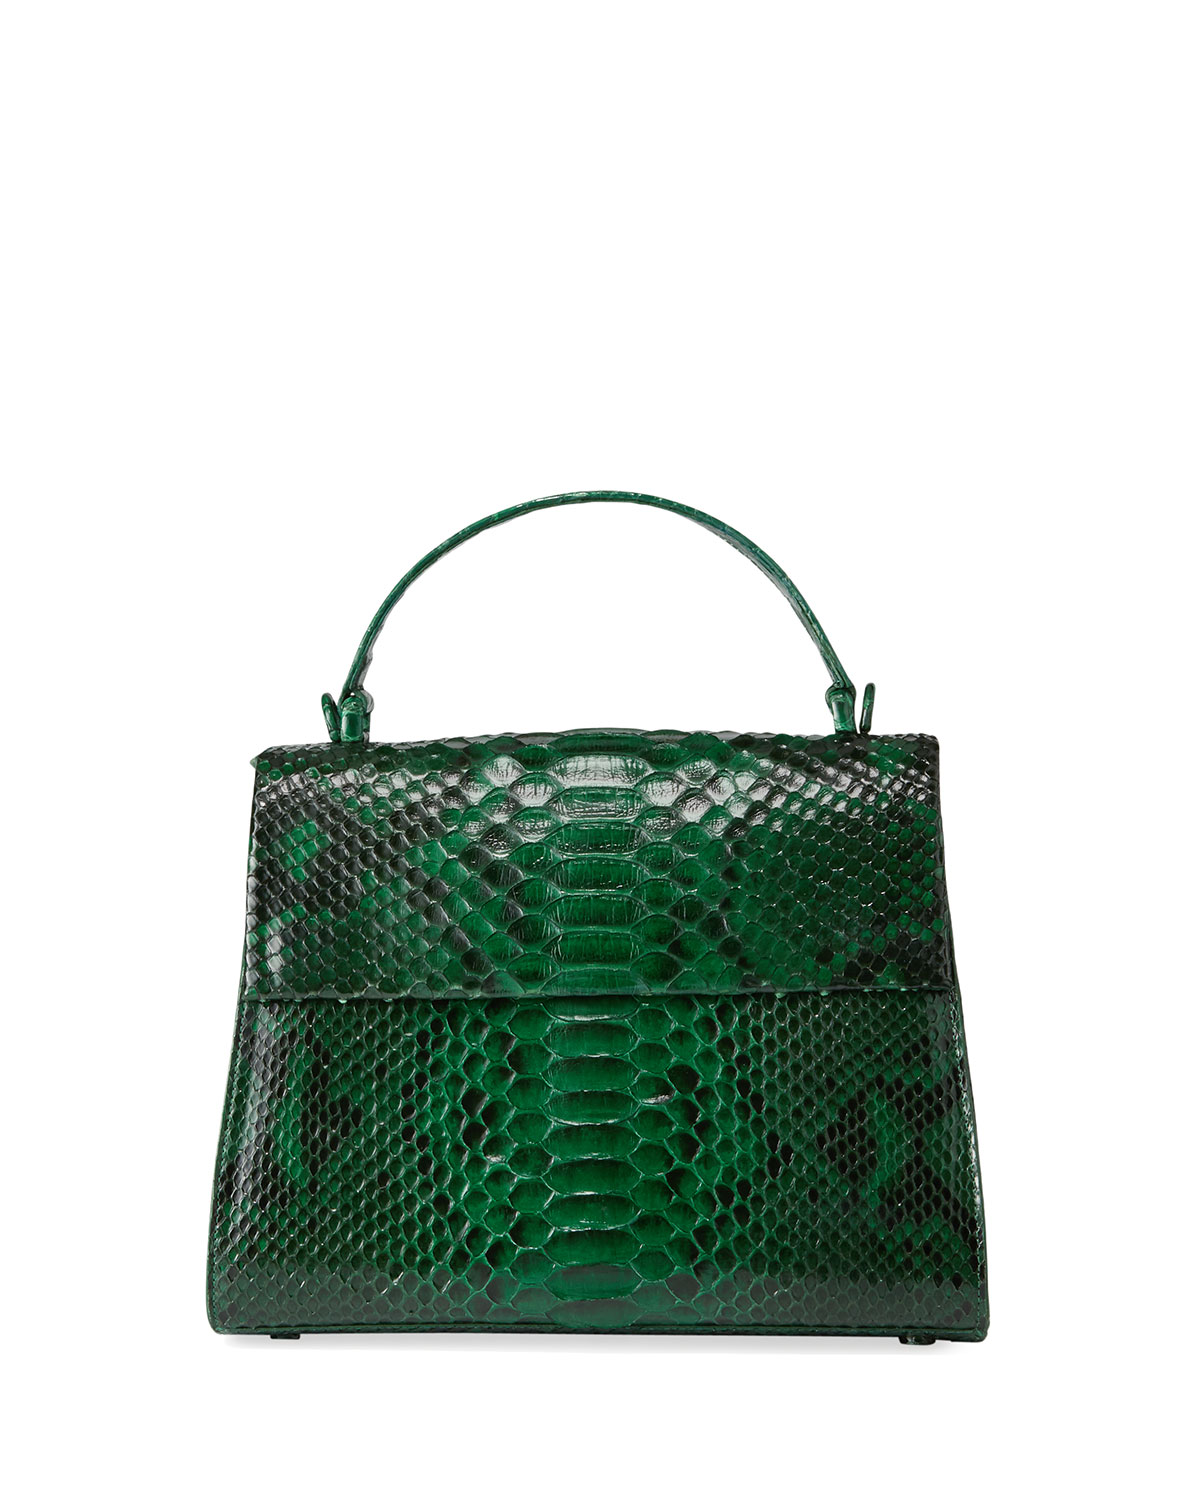 Nancy Gonzalez Large Python Top-Handle Bag With Strap In Green